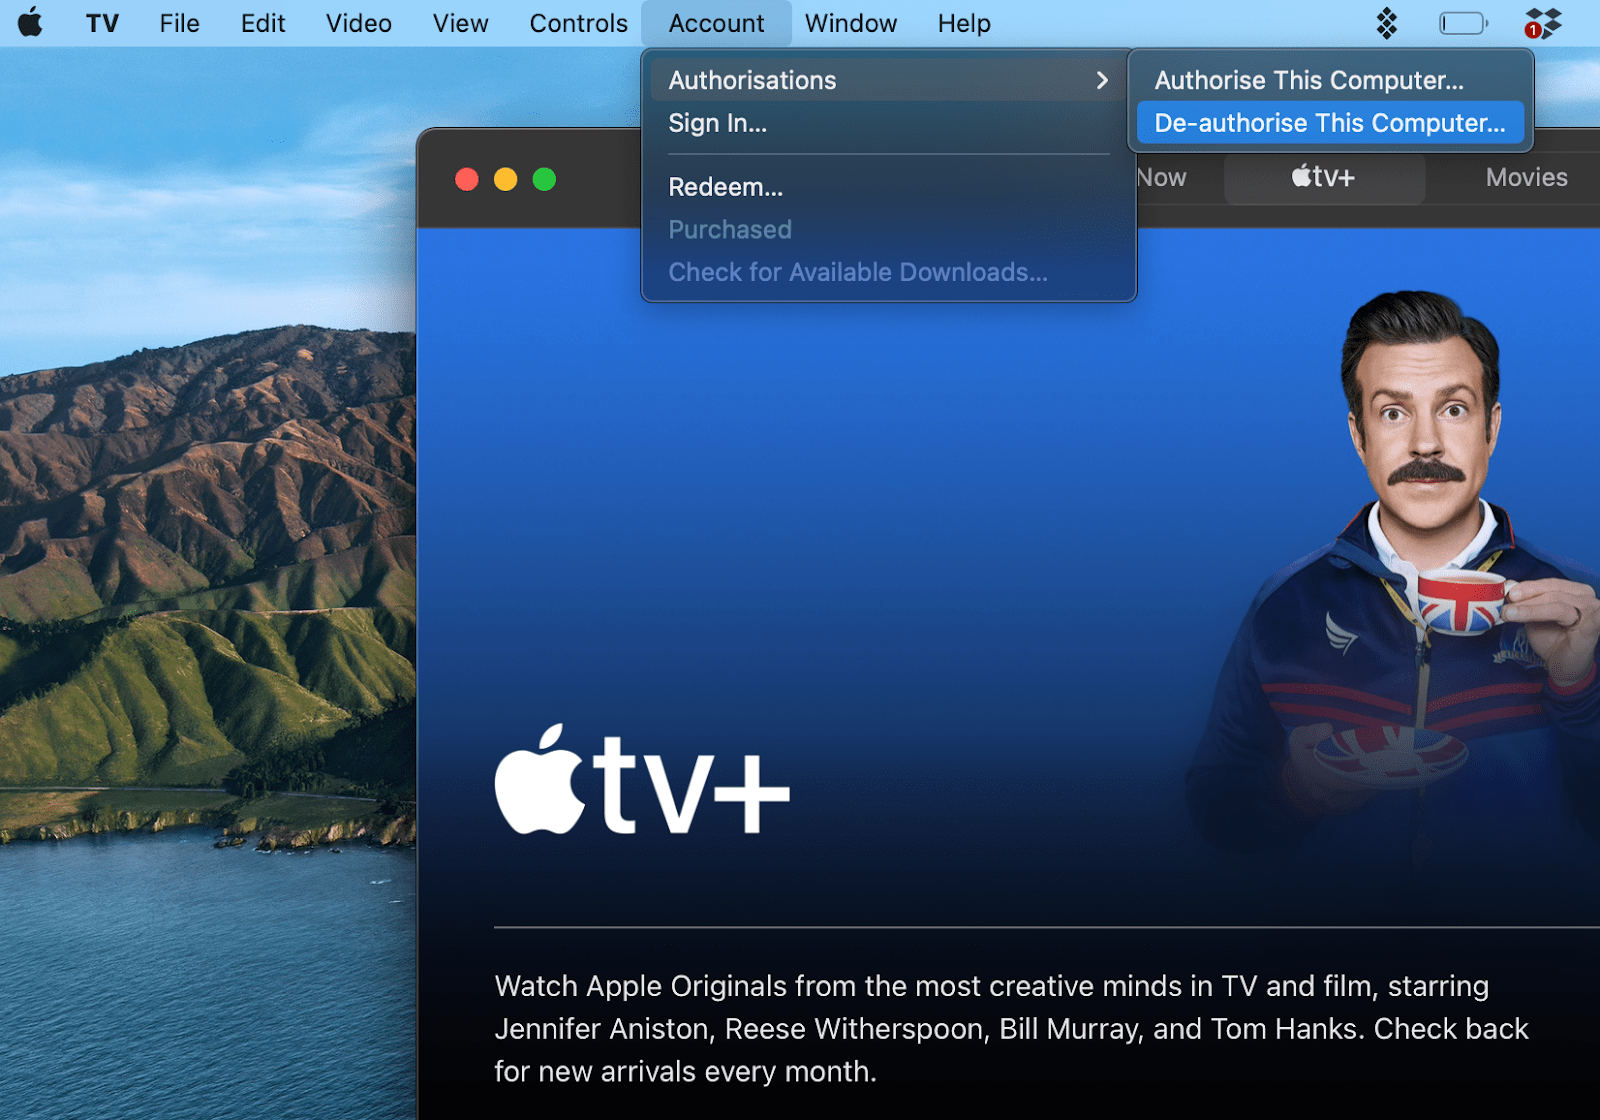 deauthorize Apple TV, Music, or Podcasts